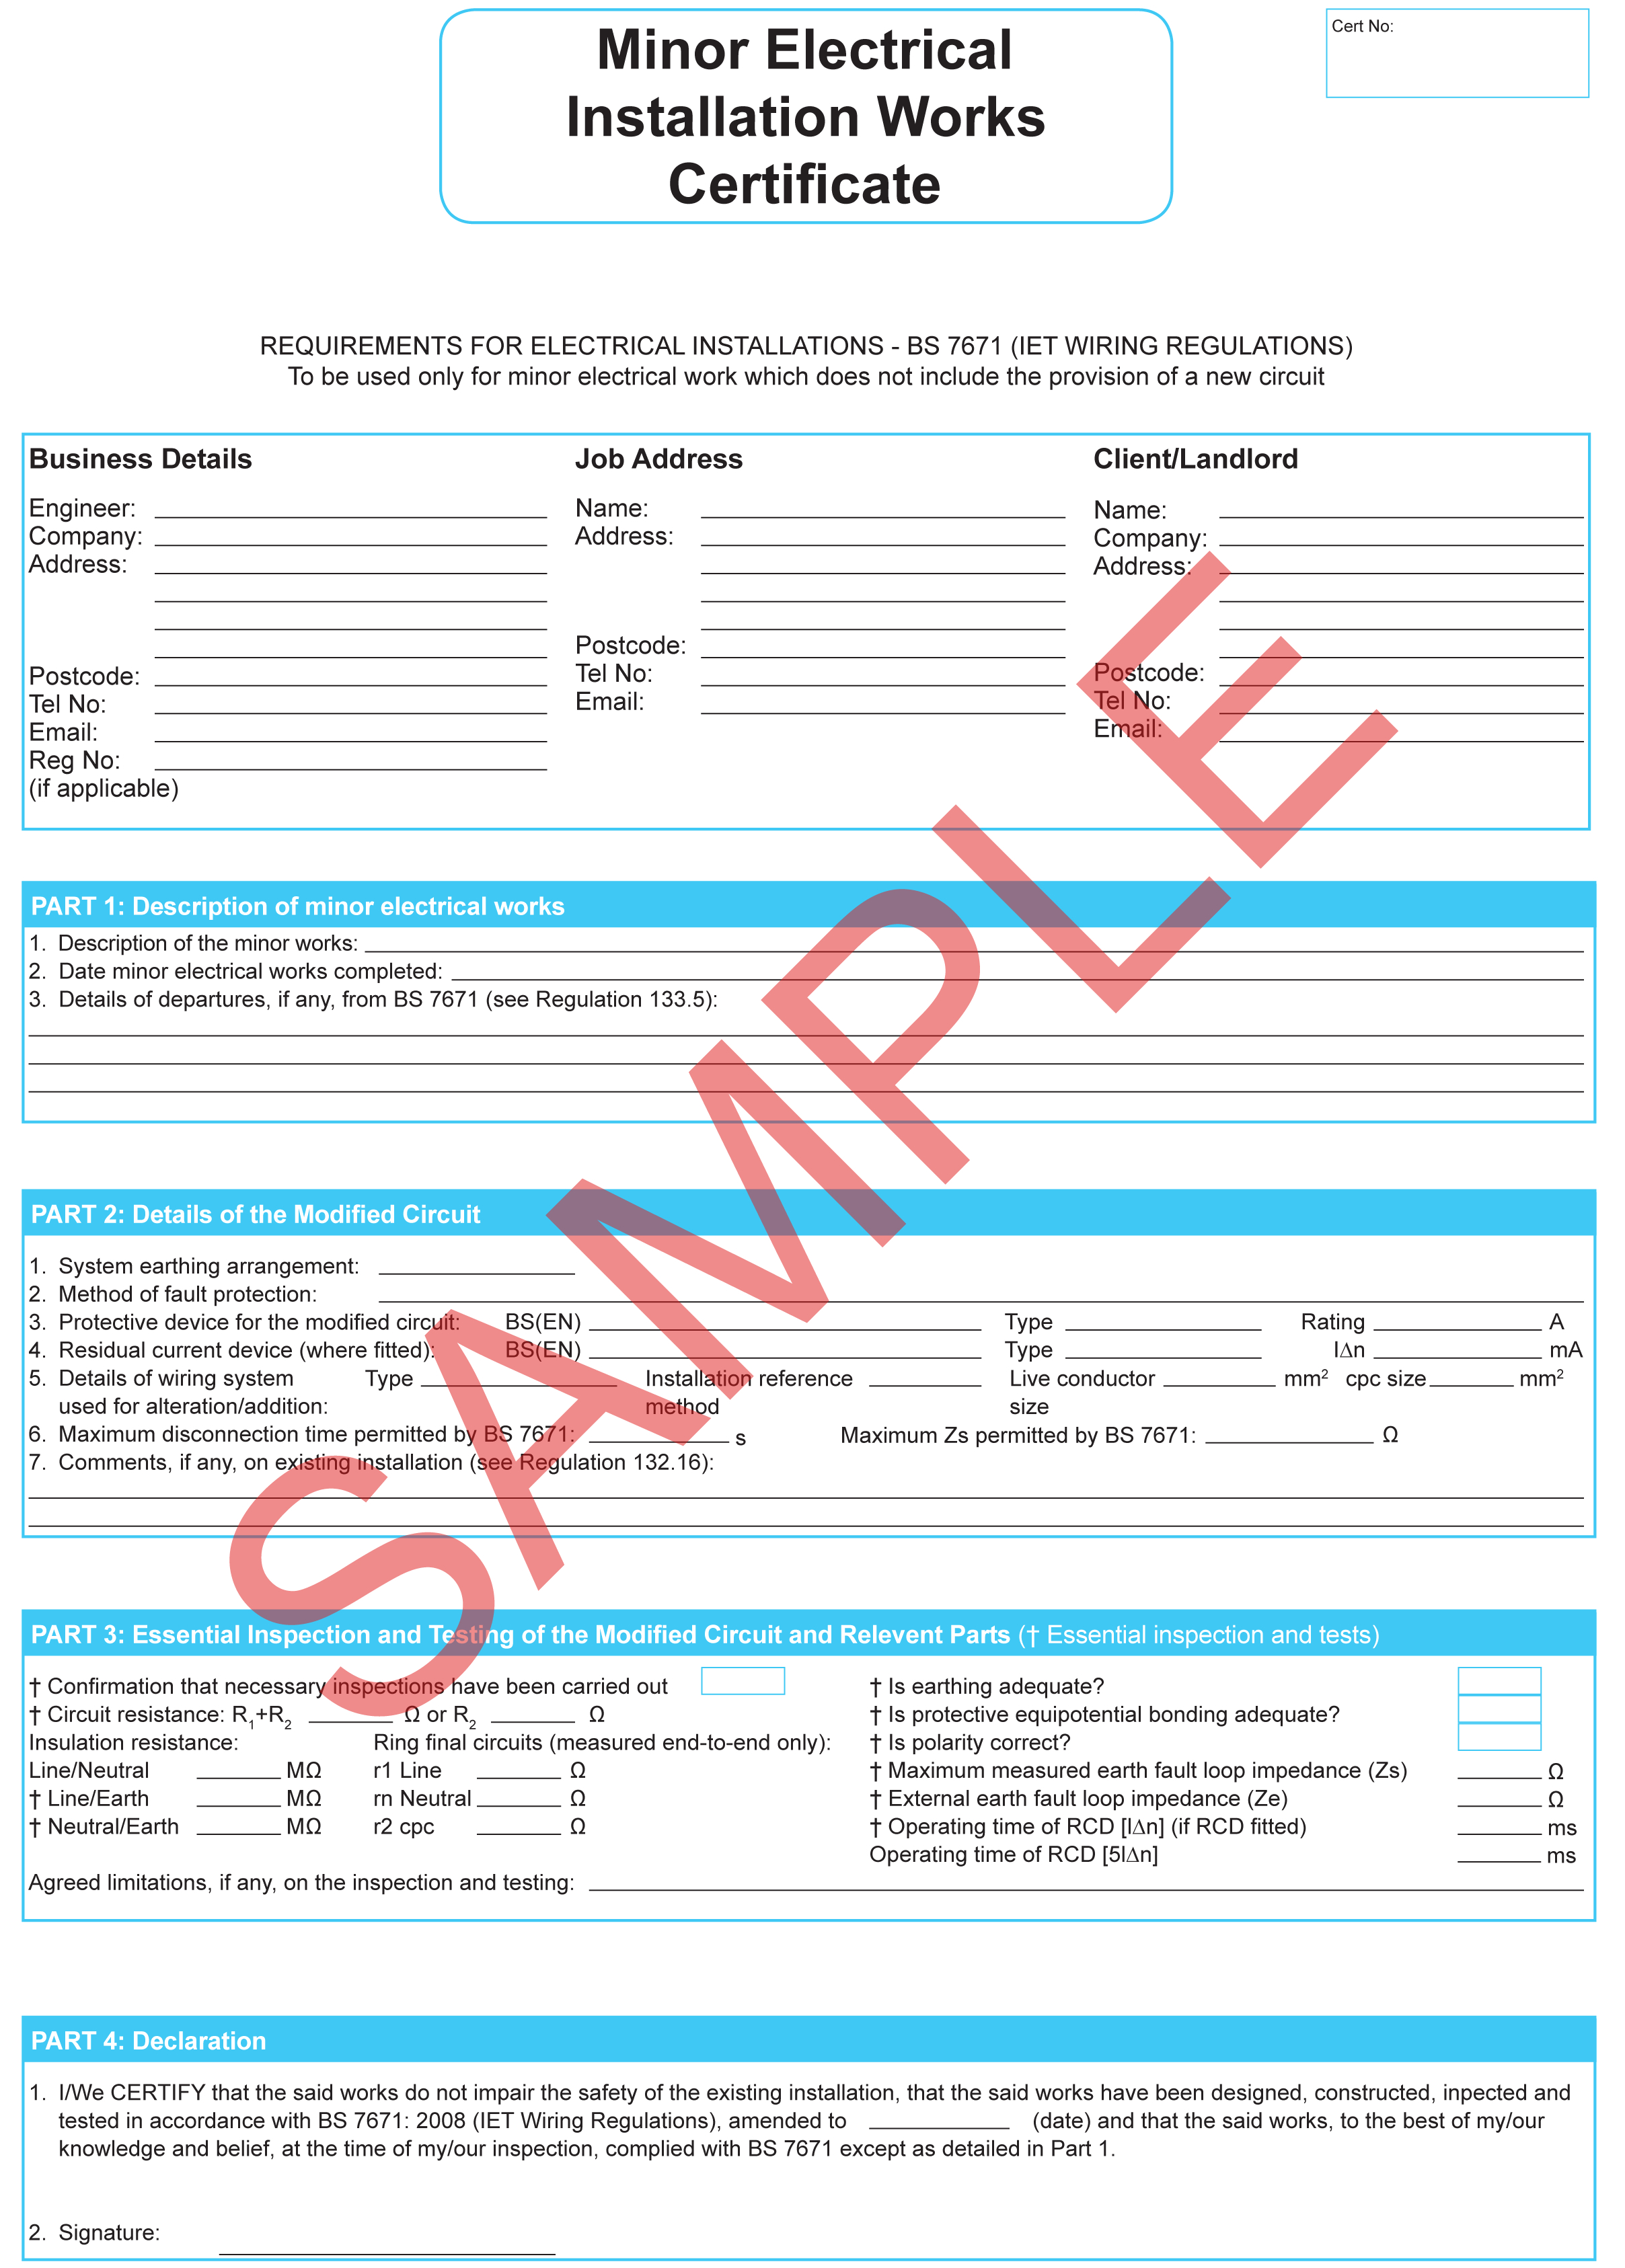 Certificates  Everycert For Minor Electrical Installation Works Certificate Template